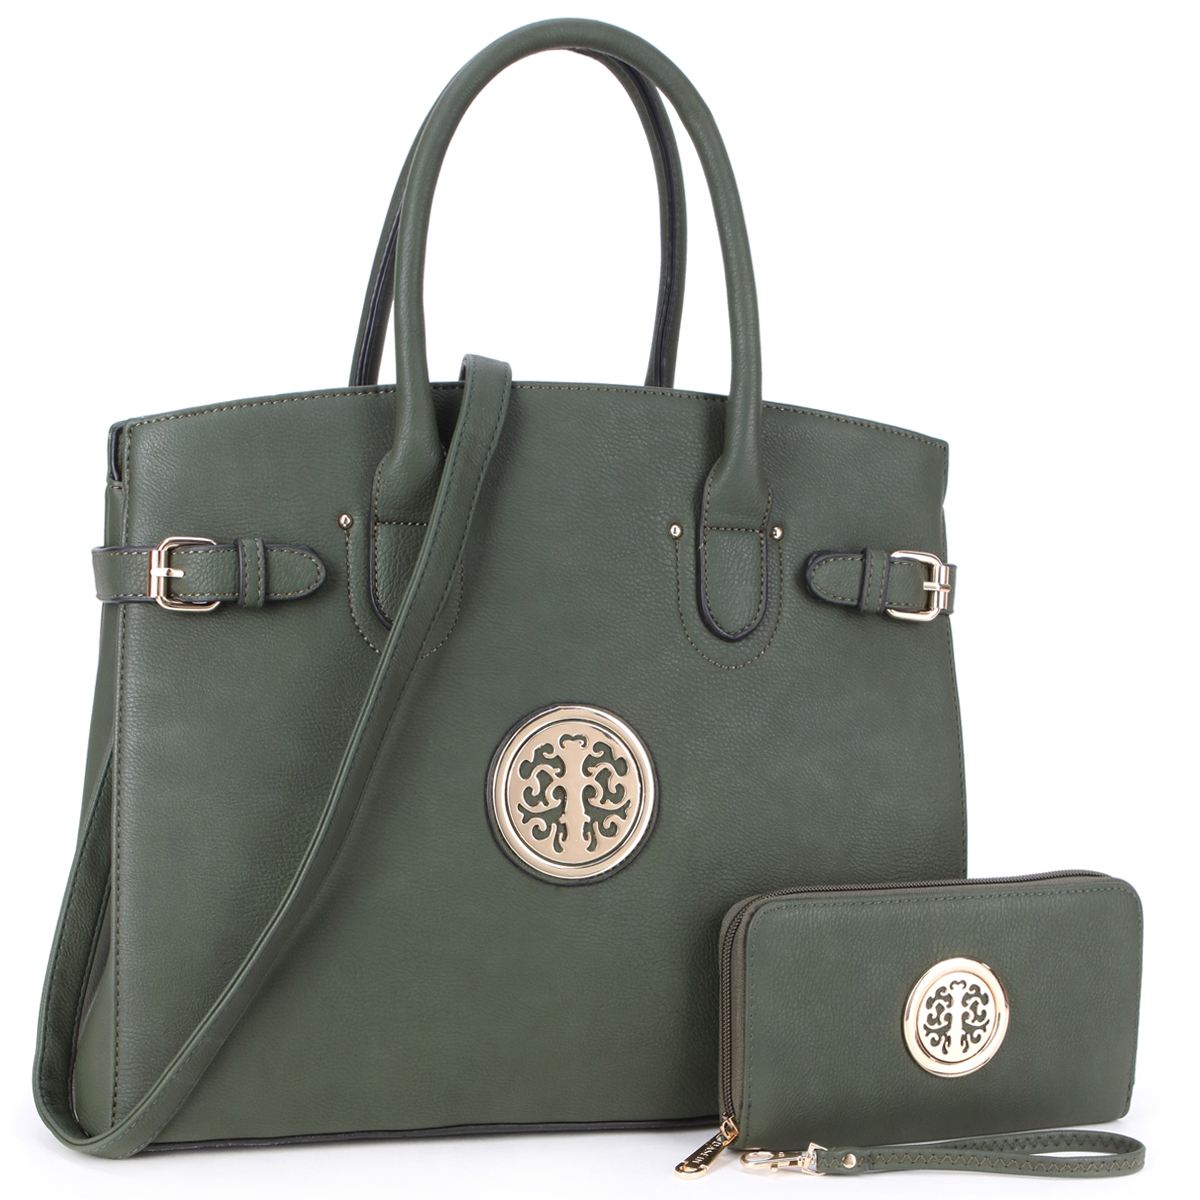 Dasein Faux Leather Satchel with Emblem and Side Buckle Deco and with Matching Wallet